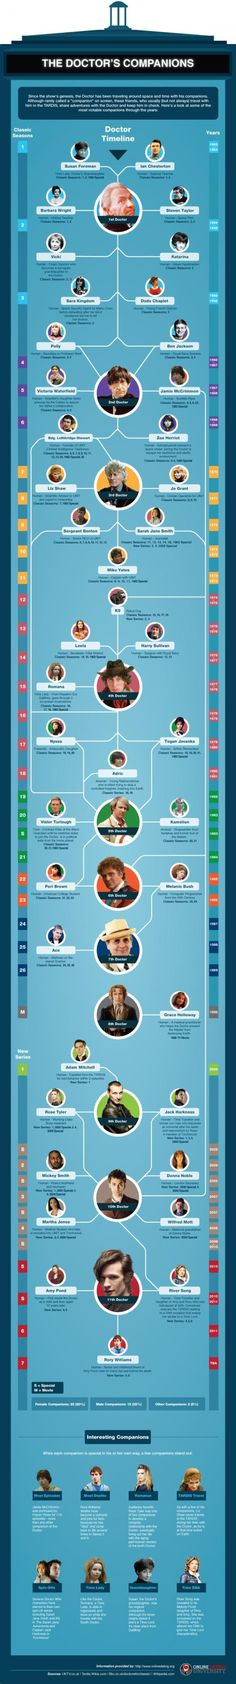 Doctor Who & Companions Infographic.  Trying to educate myself; helpful chart!